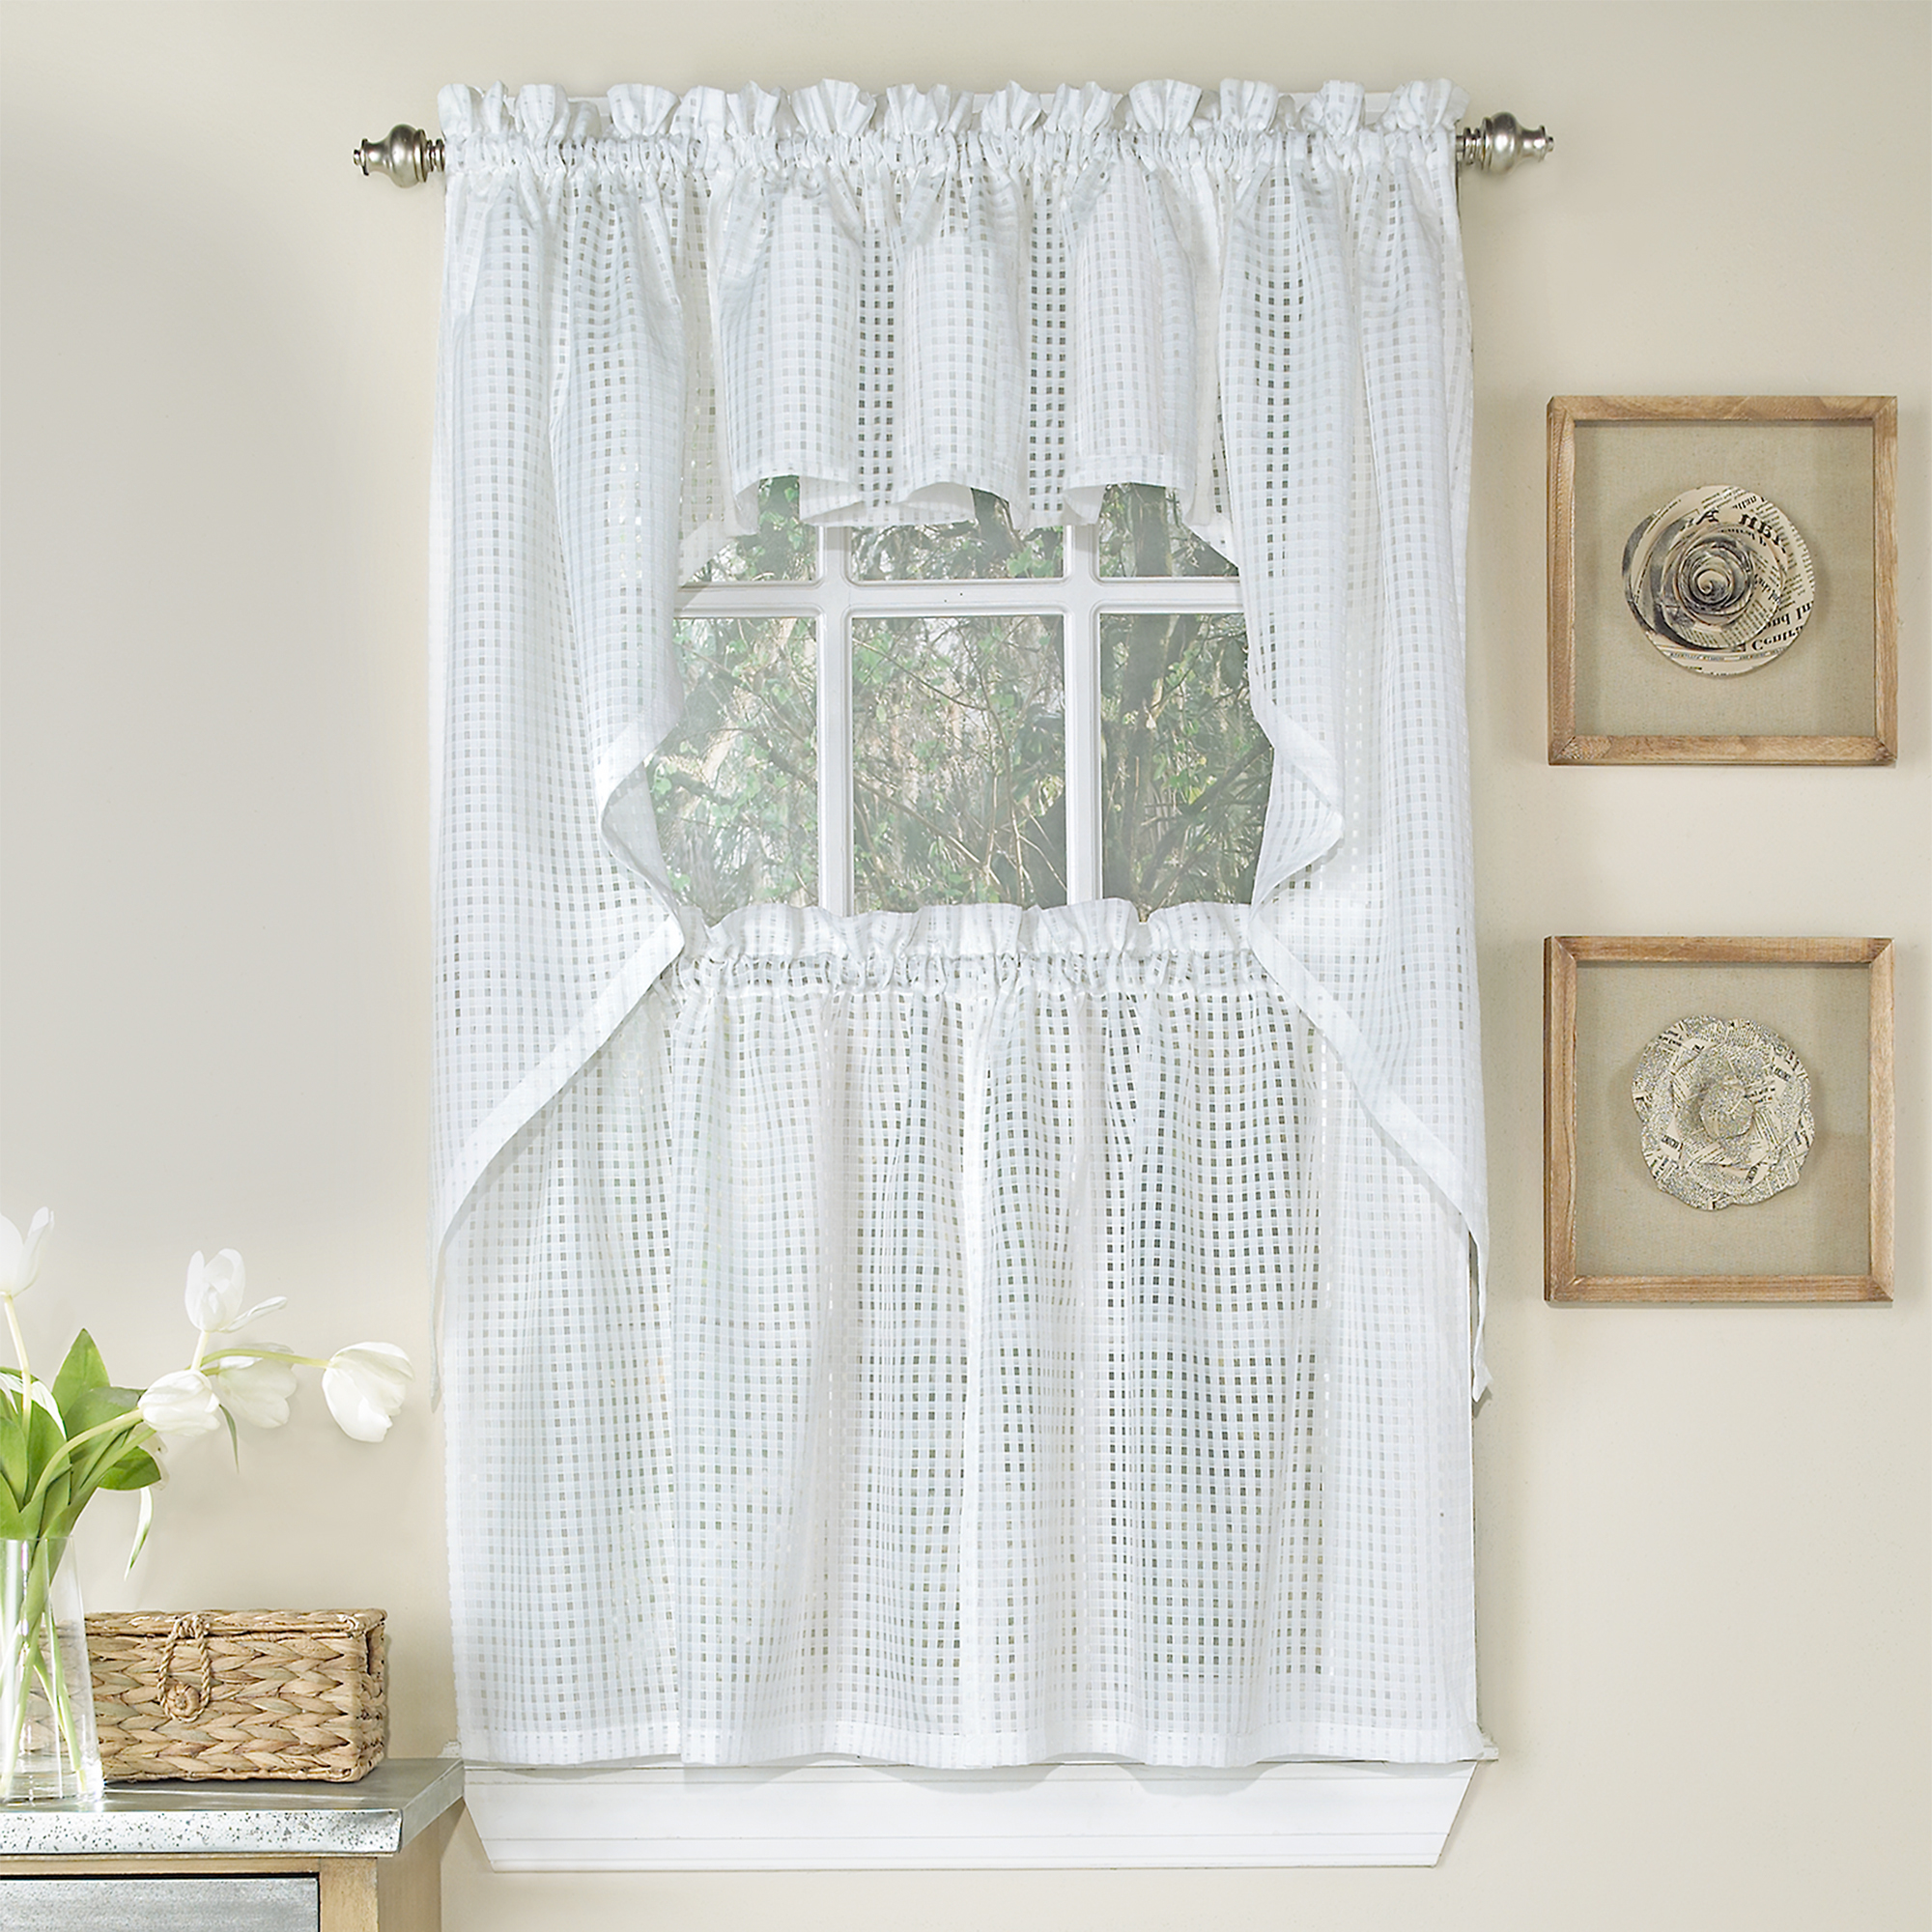 Details About Micro Check 2 Tone White Semi Sheer Window Curtain Tiers,  Valance, Or Swag For Well Known White Knit Lace Bird Motif Window Curtain Tiers (View 4 of 20)